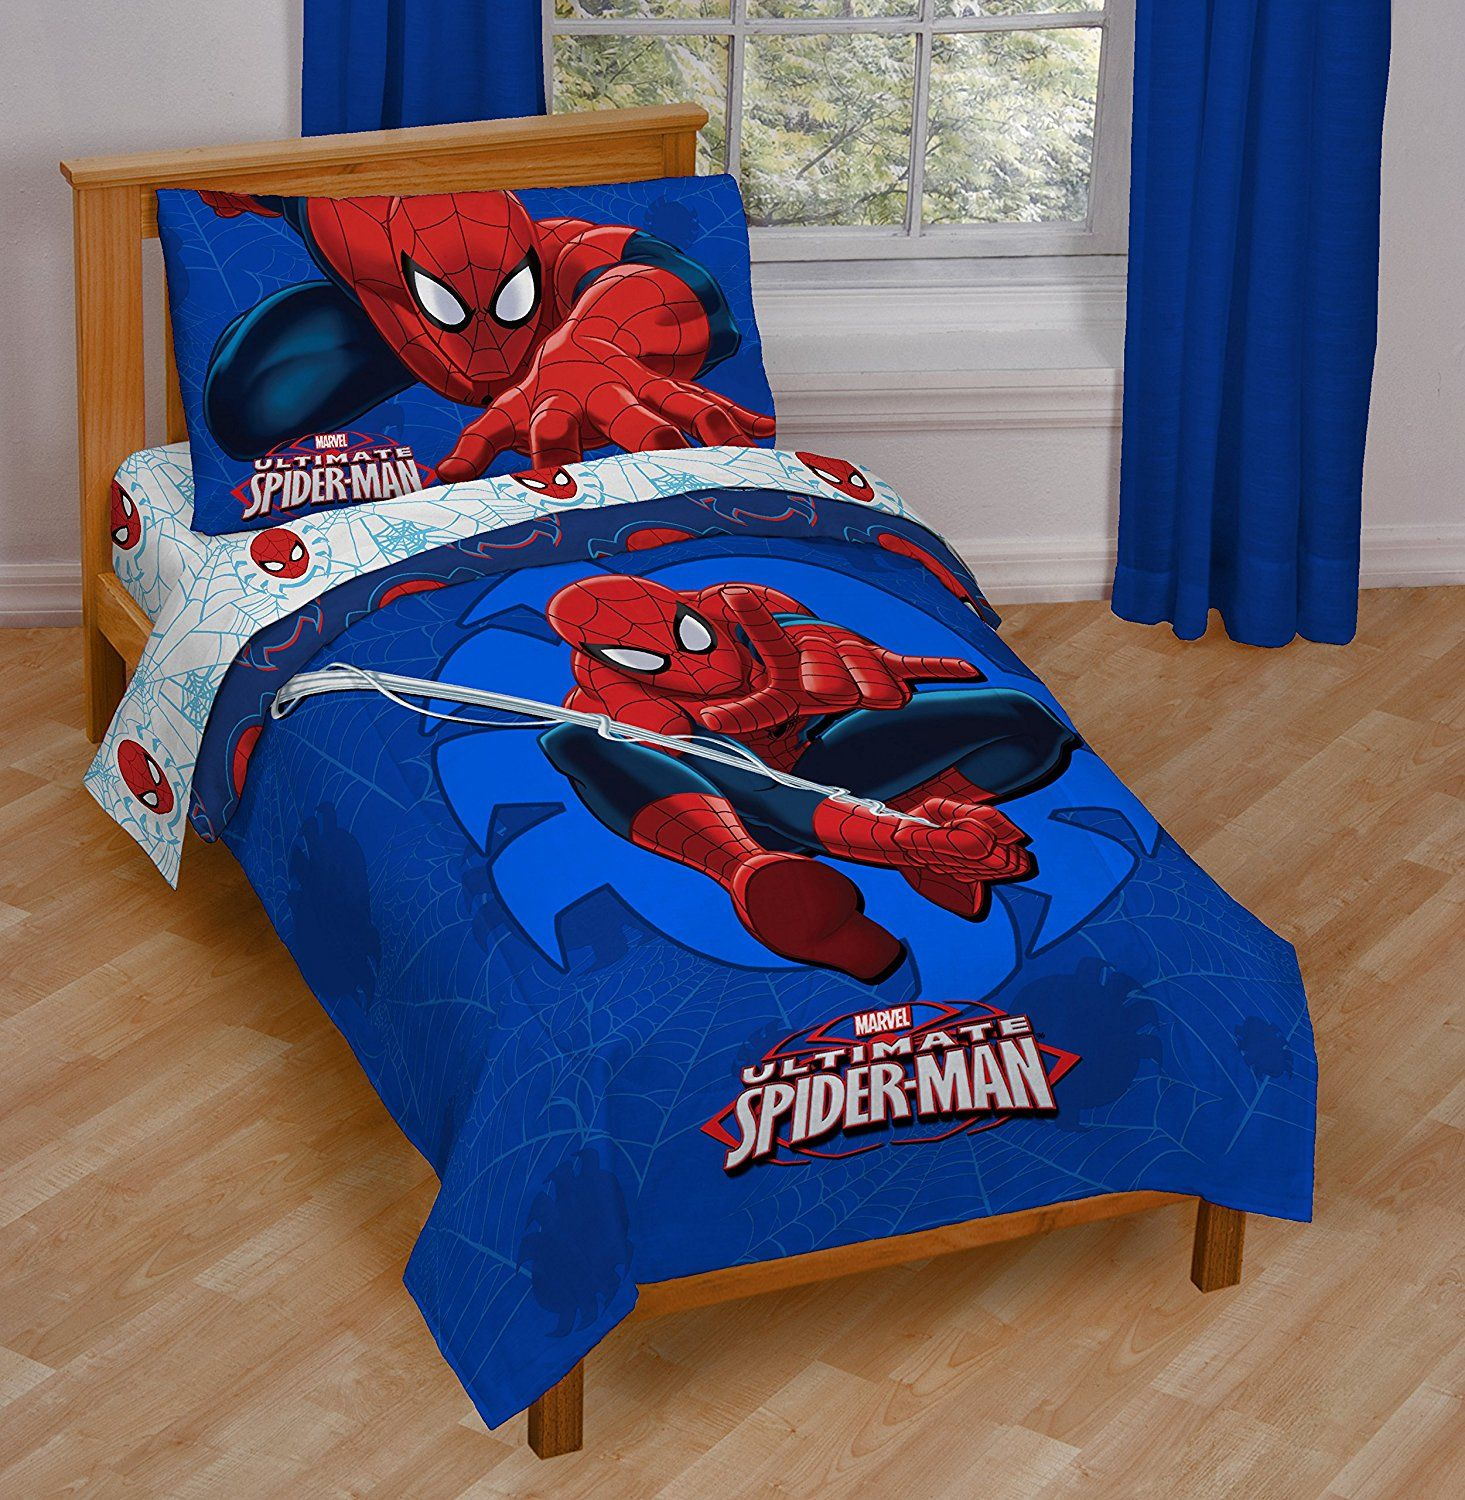 Marvel Spider Man Bedding That All Kids Love To Have On Their